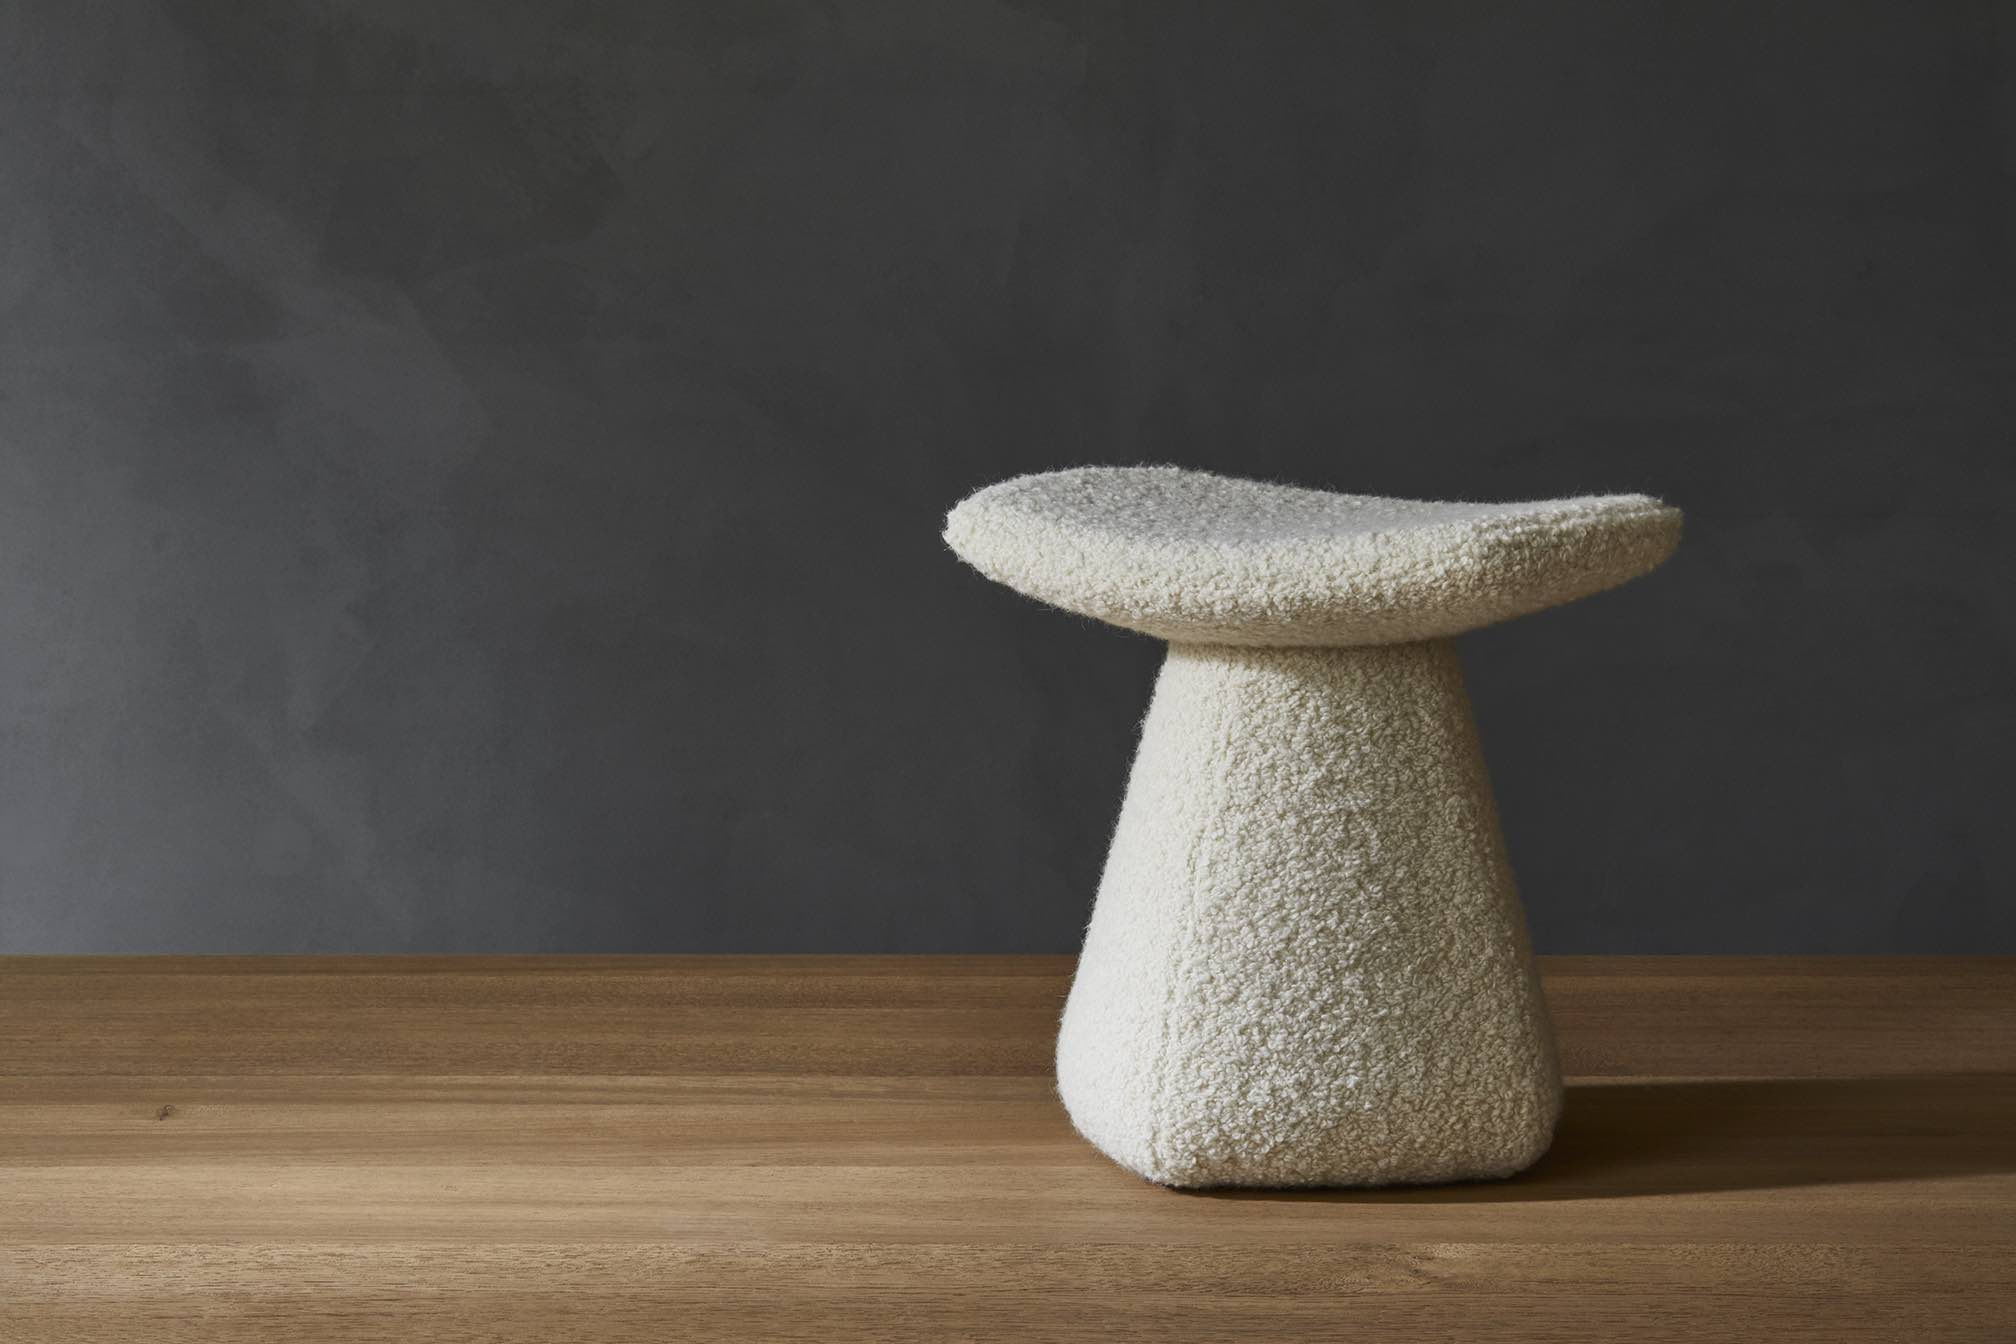 DAM-STOOL-UPHOLSTERED-WOOL-WHITE-DESIGN-CHRISTOPHE-DELCOURT-COLLECTION-PARTICULIER